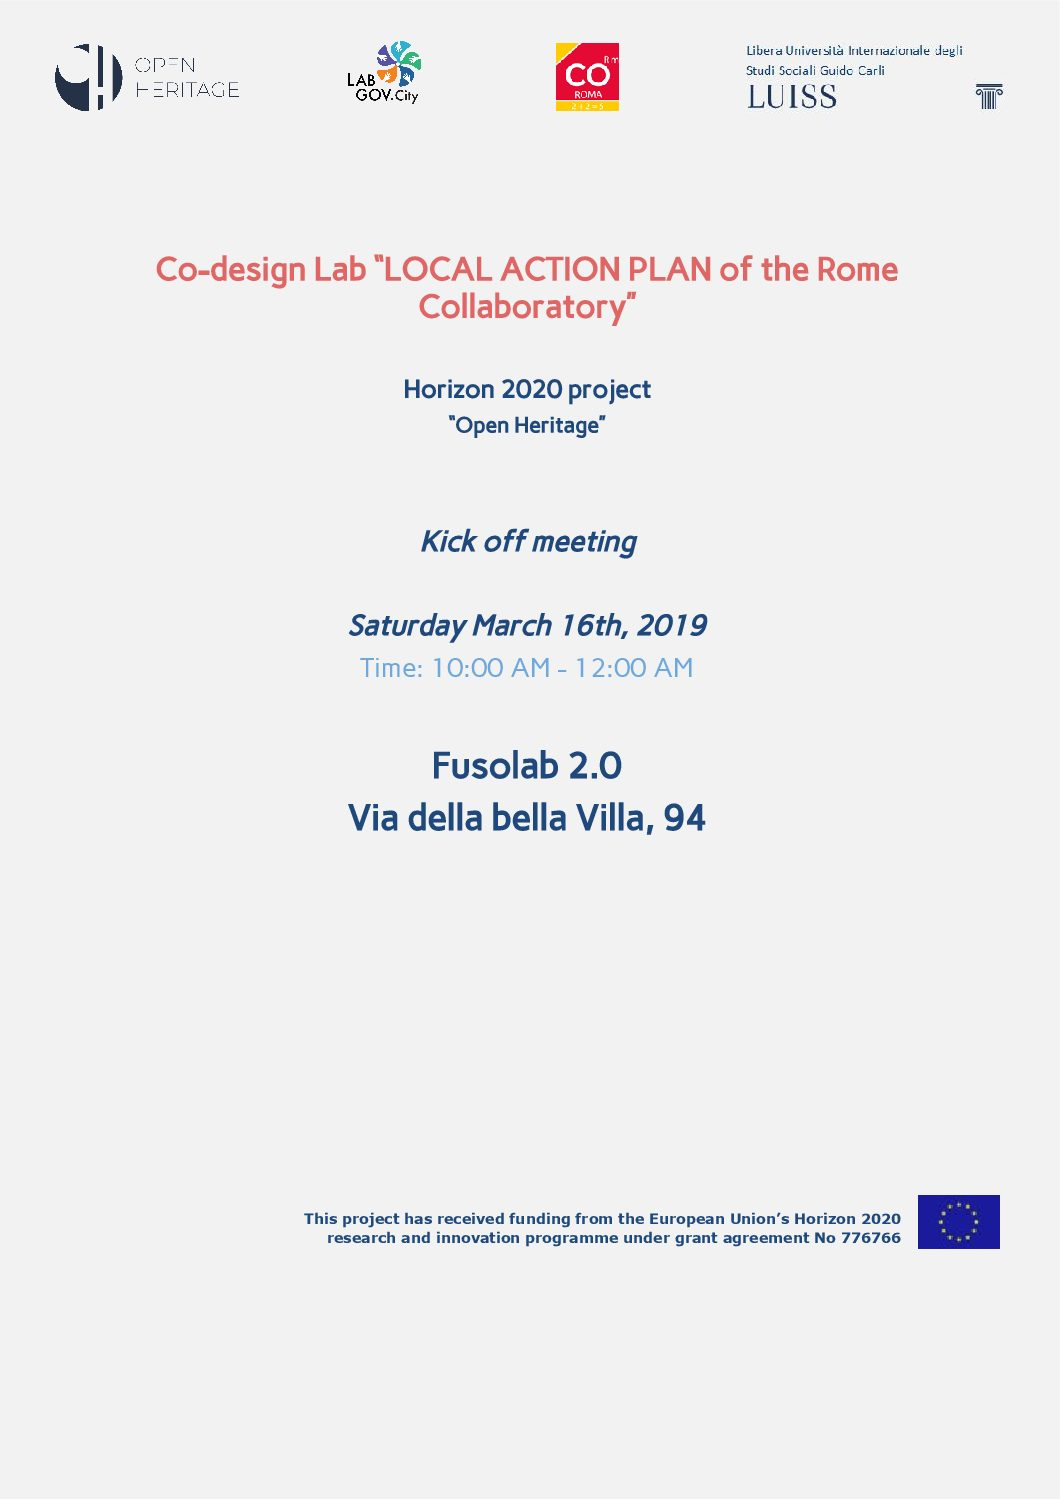 Launch of the incubation process of the Local Action Plan (LAP) of the Rome Collaboratory within the Open Heritage project.